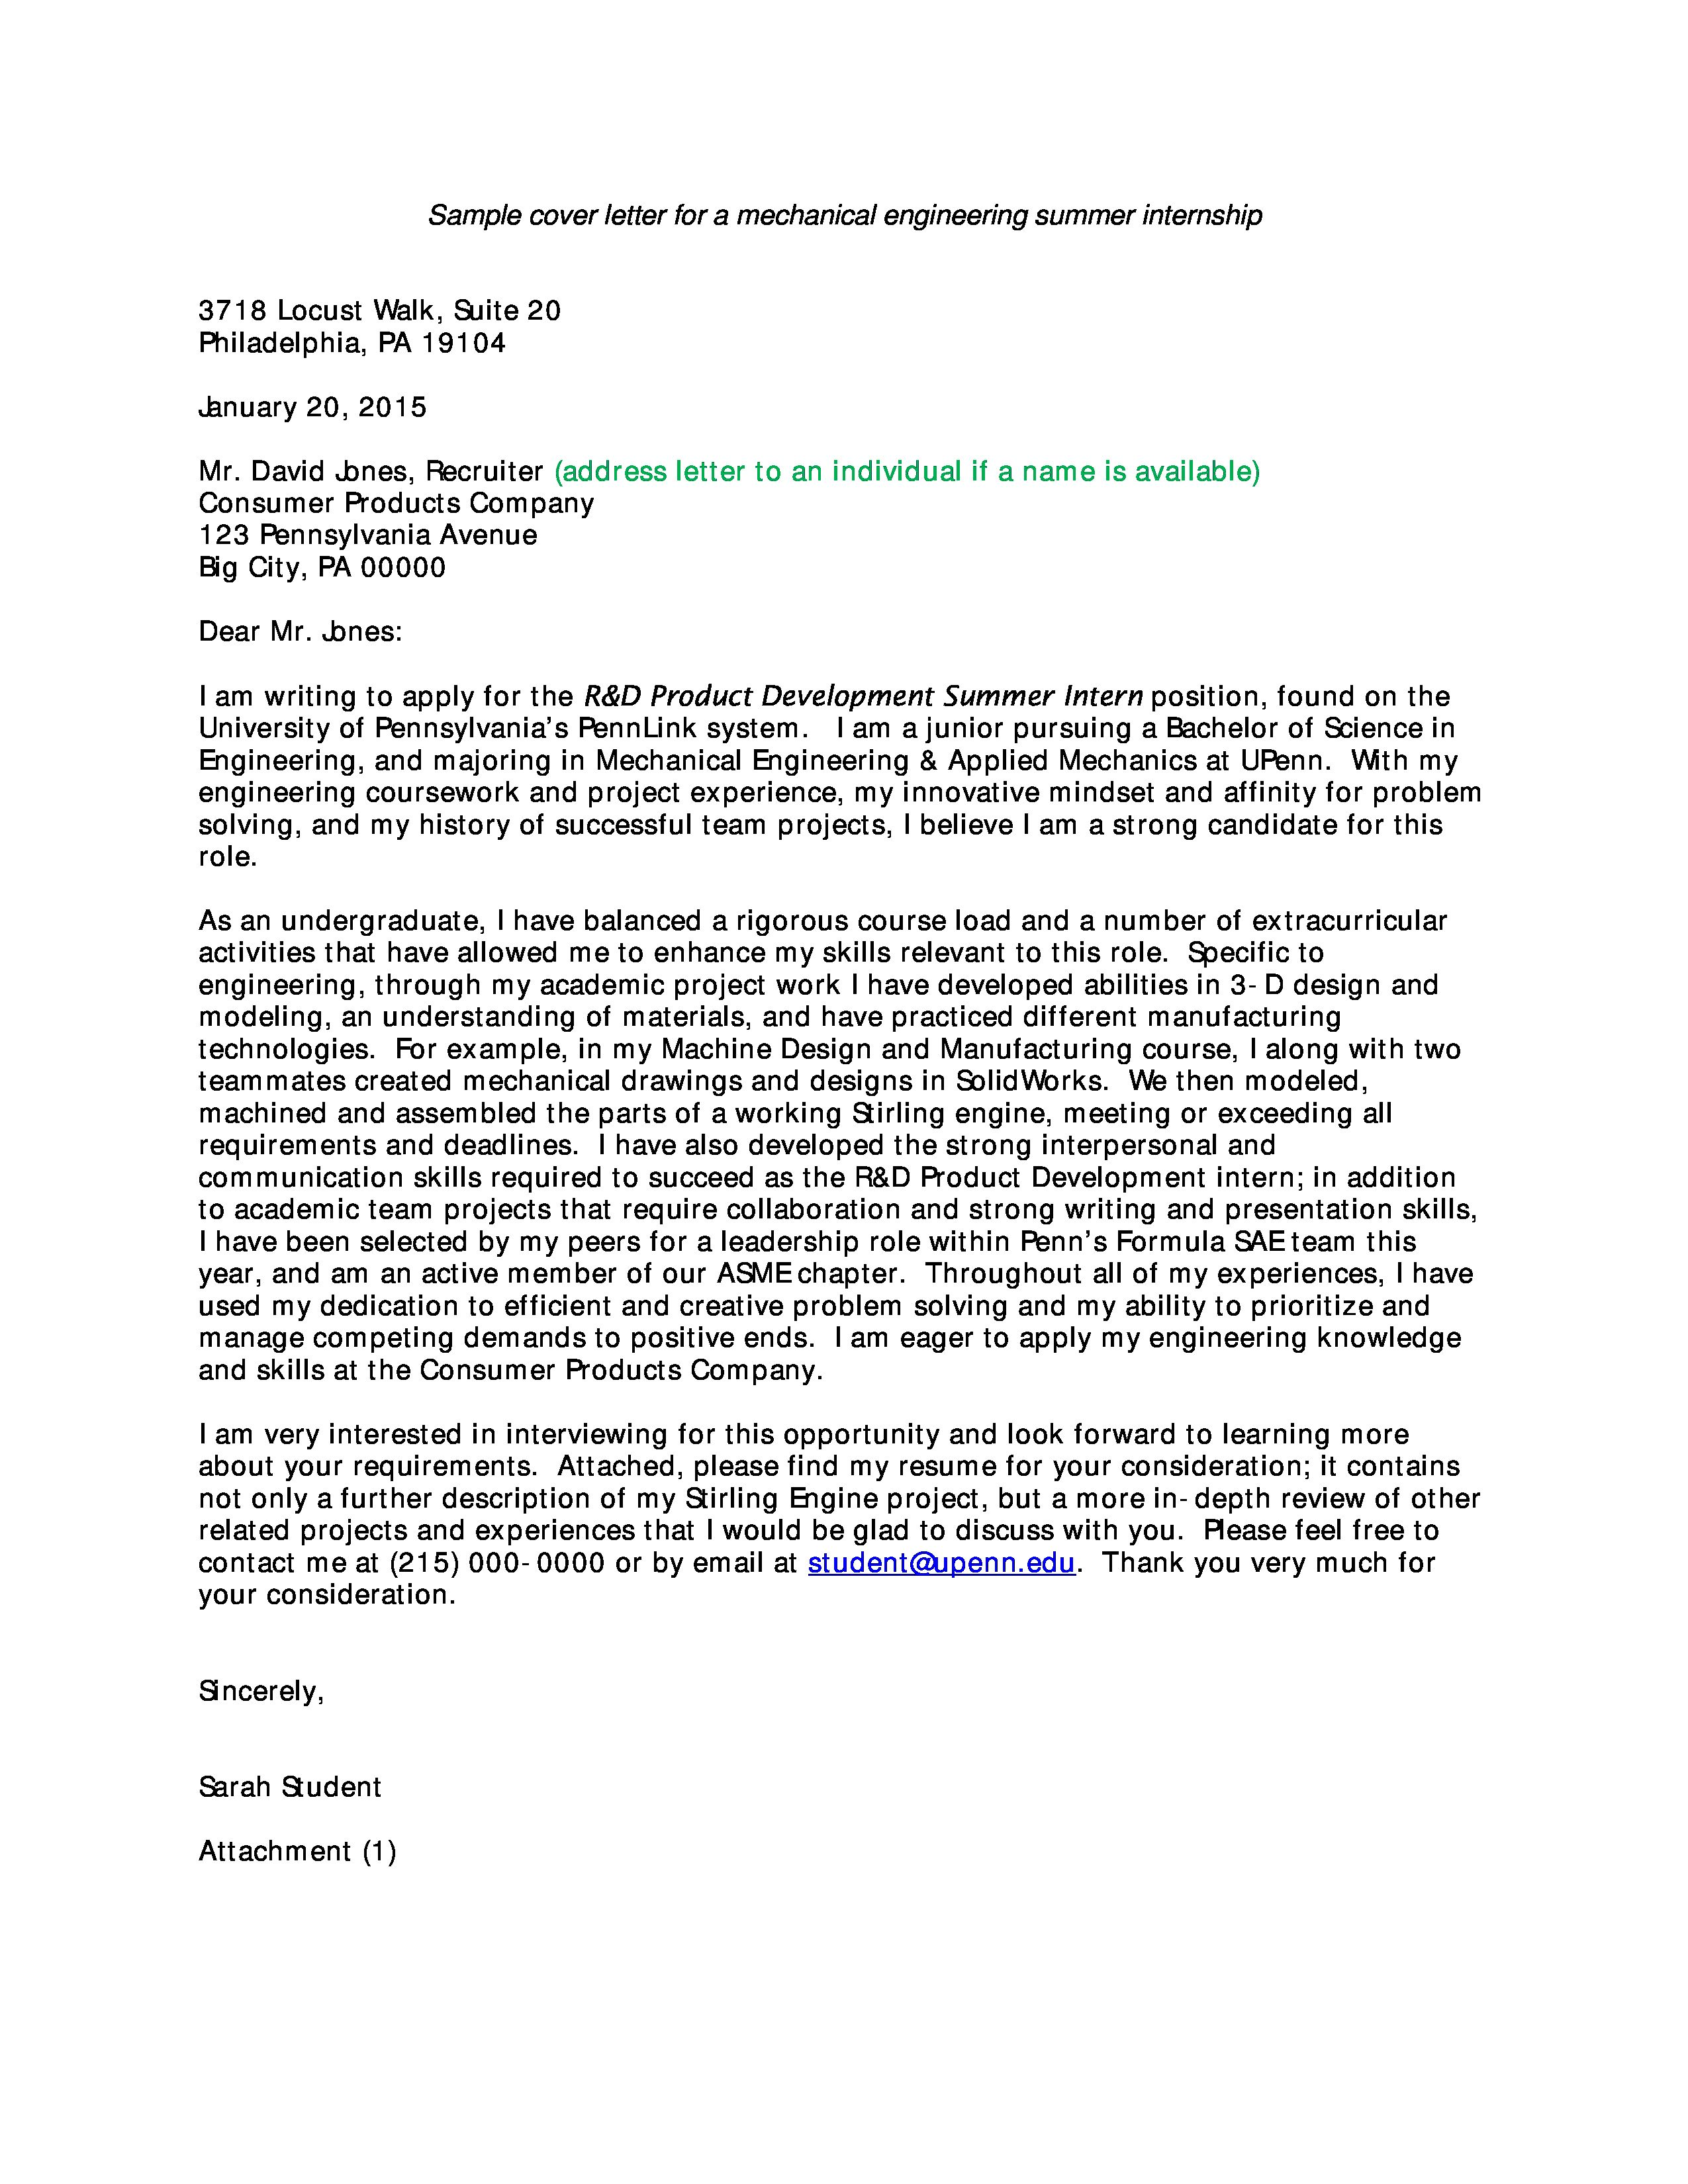 26 Cover Letter For Engineering Internship Cover Letter Tips Lettering Engineering Internships Entry level civil engineering cover letter